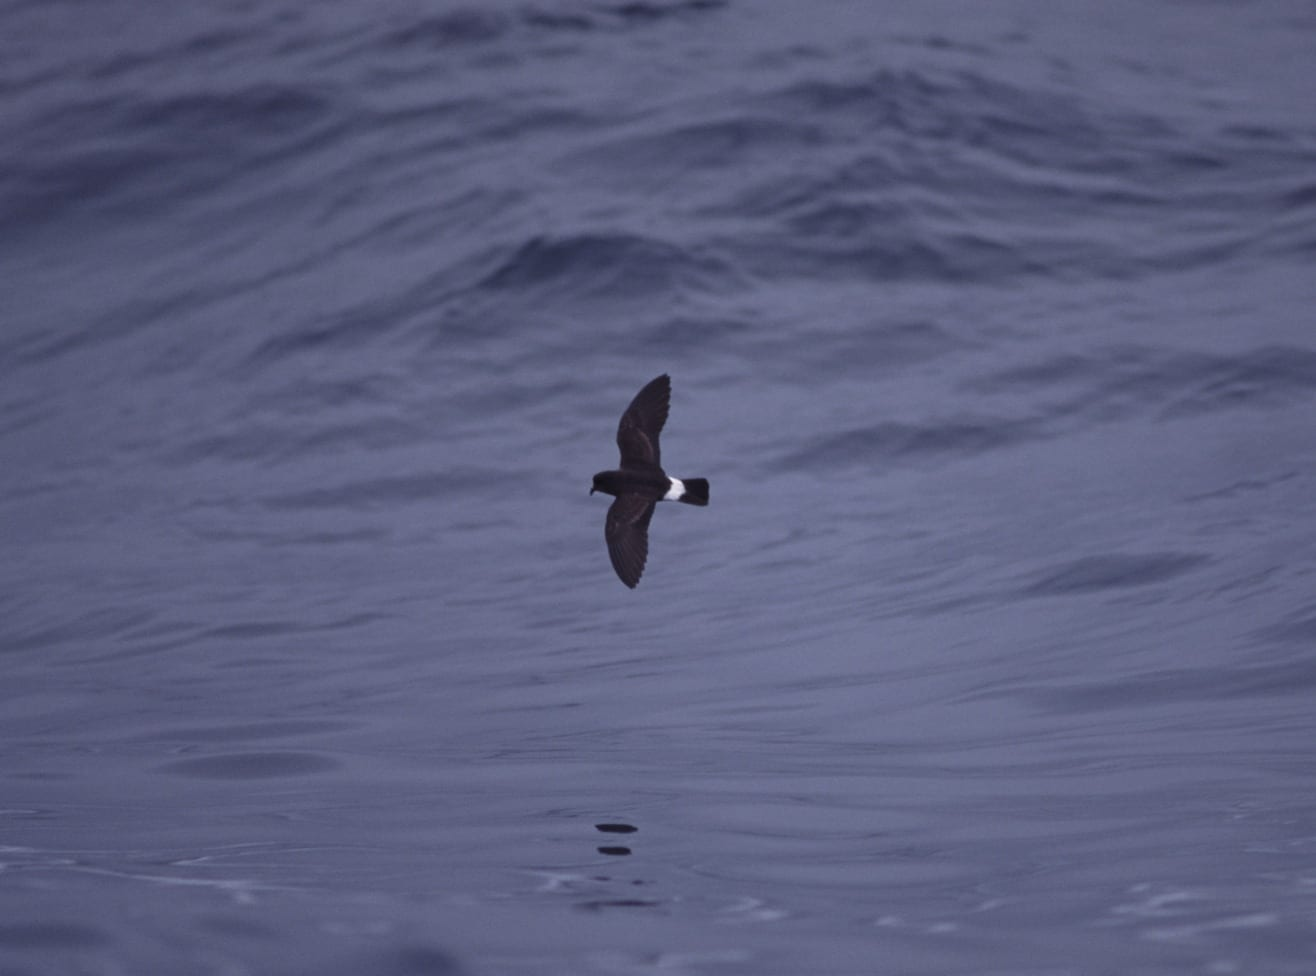 strom-petrel-flying-over-the-sea